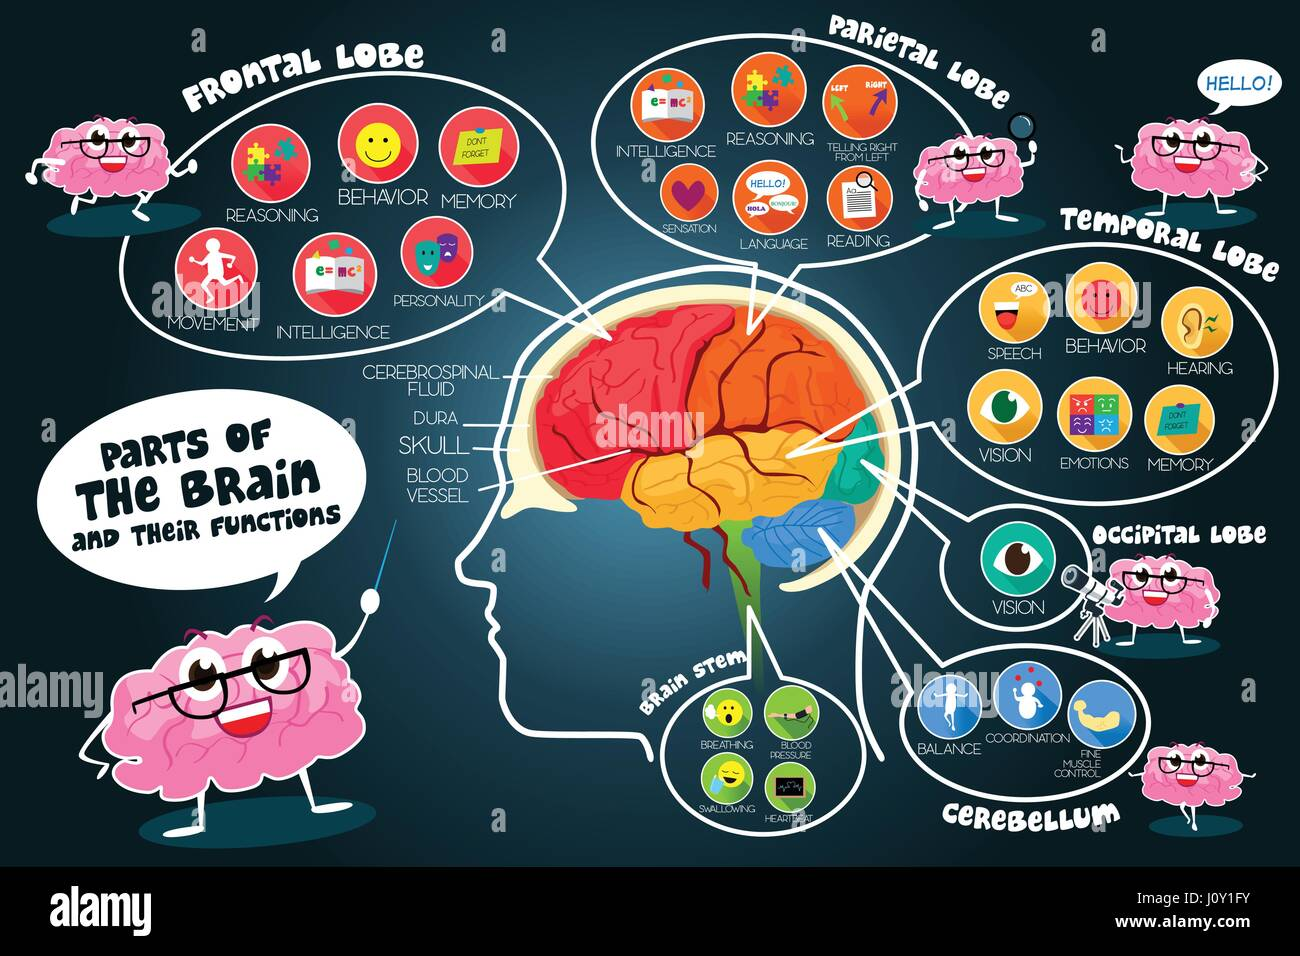 A vector illustration of infographic parts and functions of brain - Stock Image